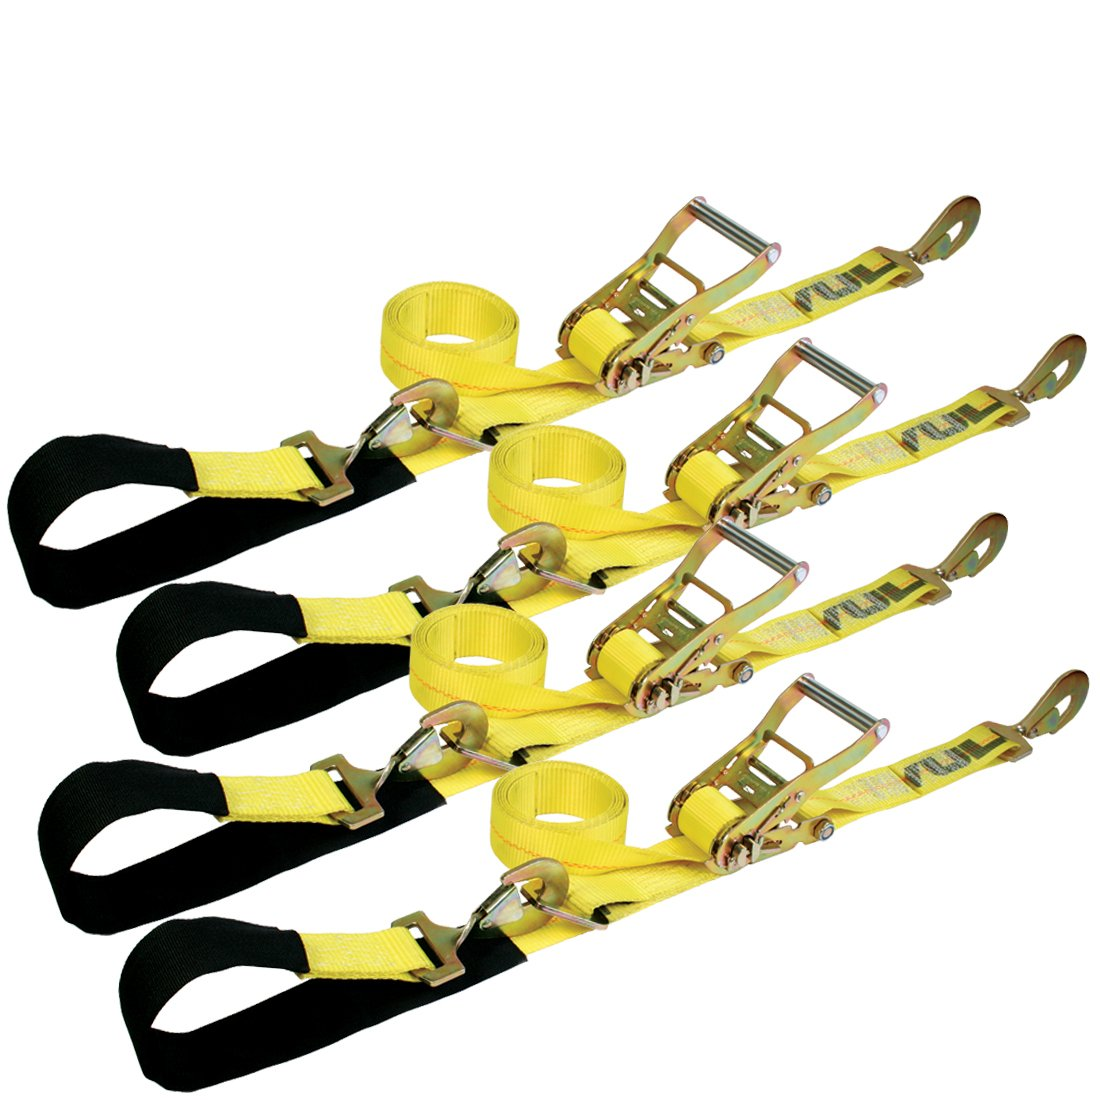 Vulcan Classic Yellow Series 1-Ply Flexible Axle Tie Down Combo Strap w/Snap Hook Ratchet (2'' x 102'' Pack of 4) Safe Working Load - 3,300 lbs.